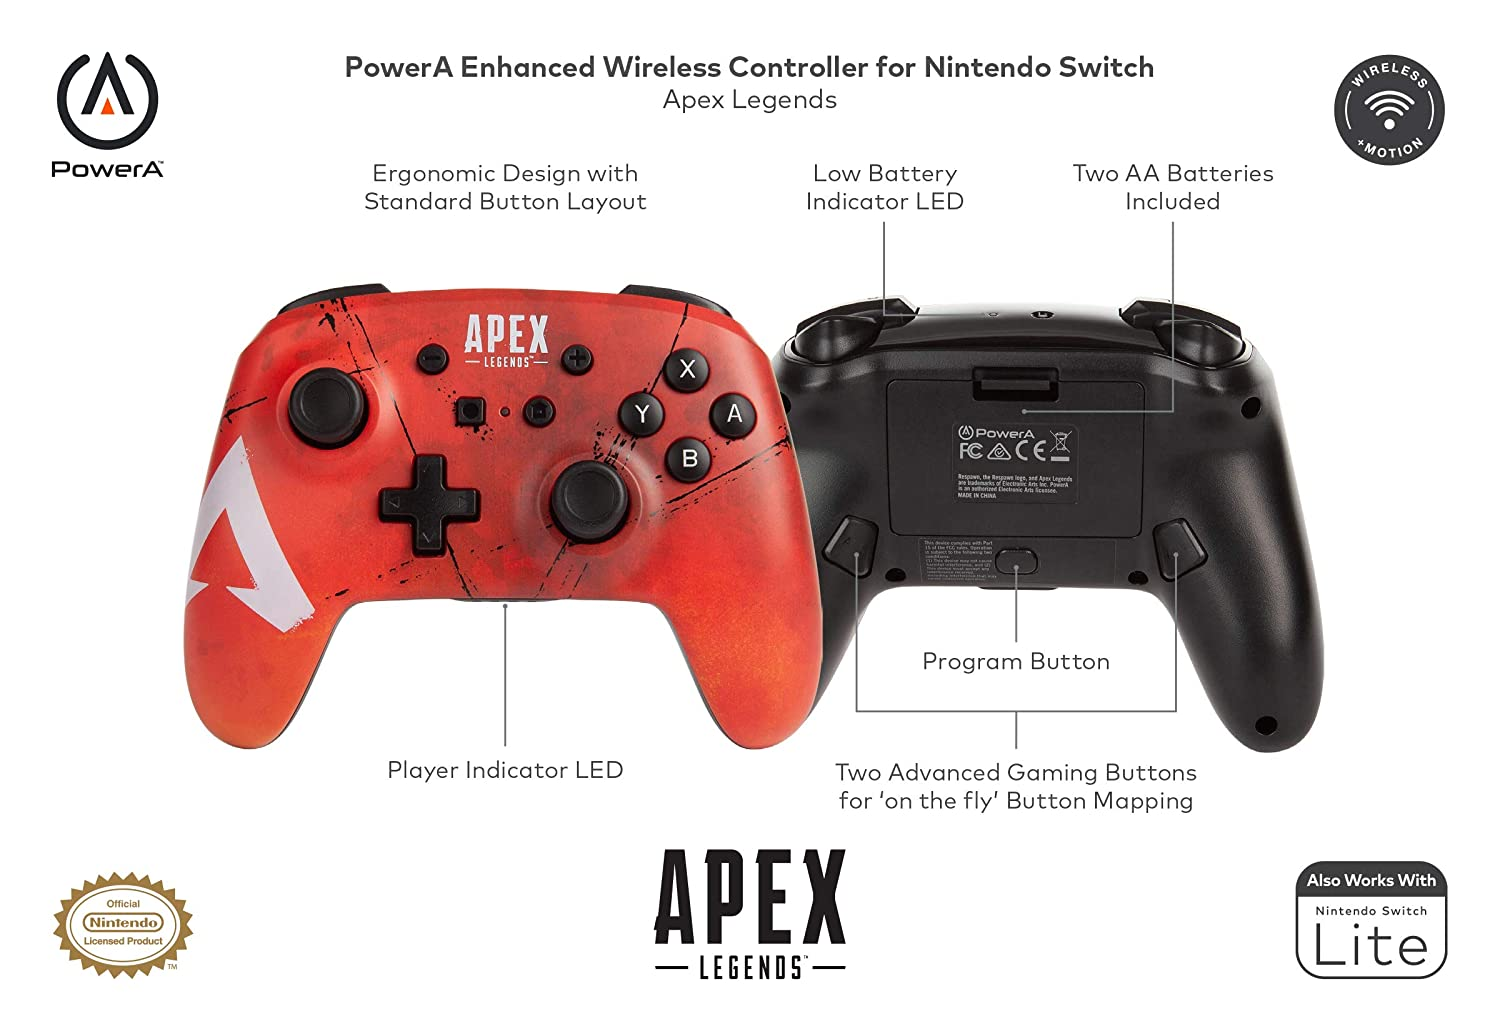 Official Apex Legends Controller Announced for Nintendo Switch: Pricing and Pre-Order Available